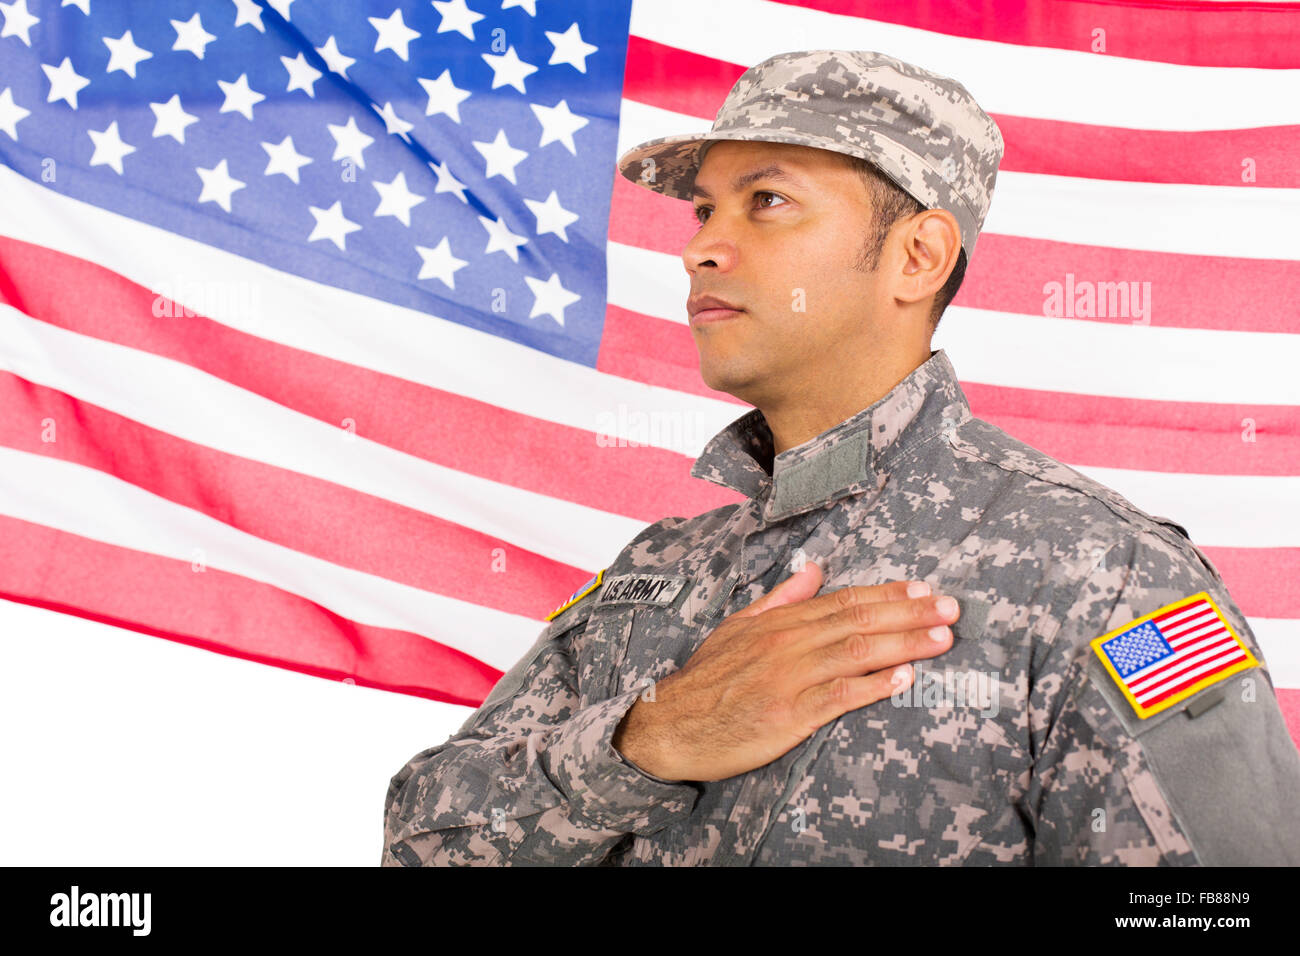 handsome American patriotic soldier with usa flag on background - Stock Image